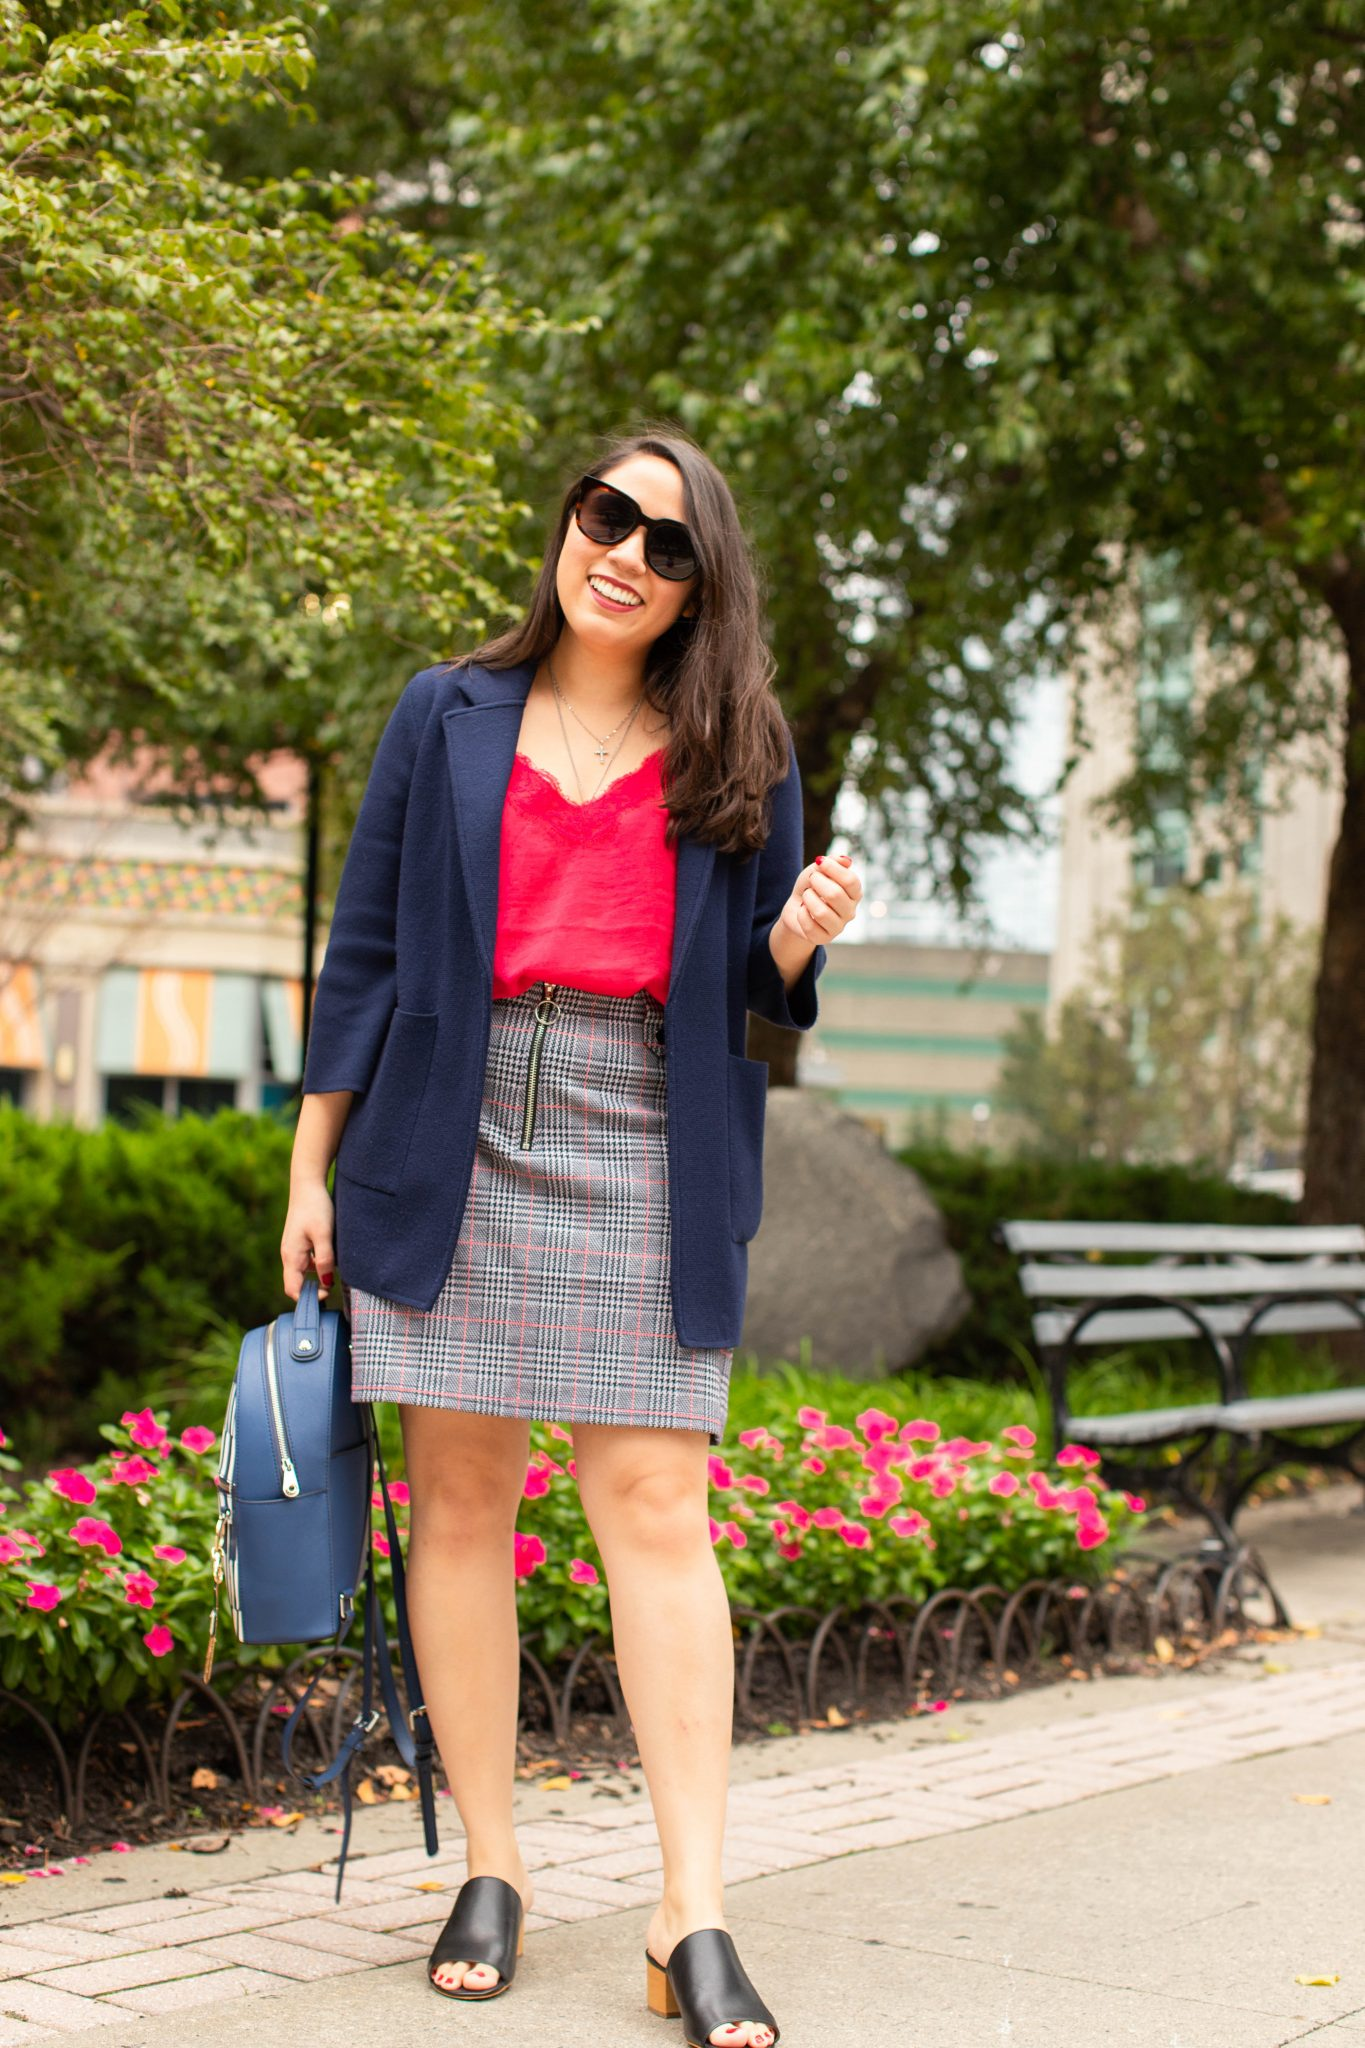 Shopping On A Budget 101 :: 7 Awesome Tips To Shop Even When Money Is Tight featured by top New York fashion blog Live Laugh Linda